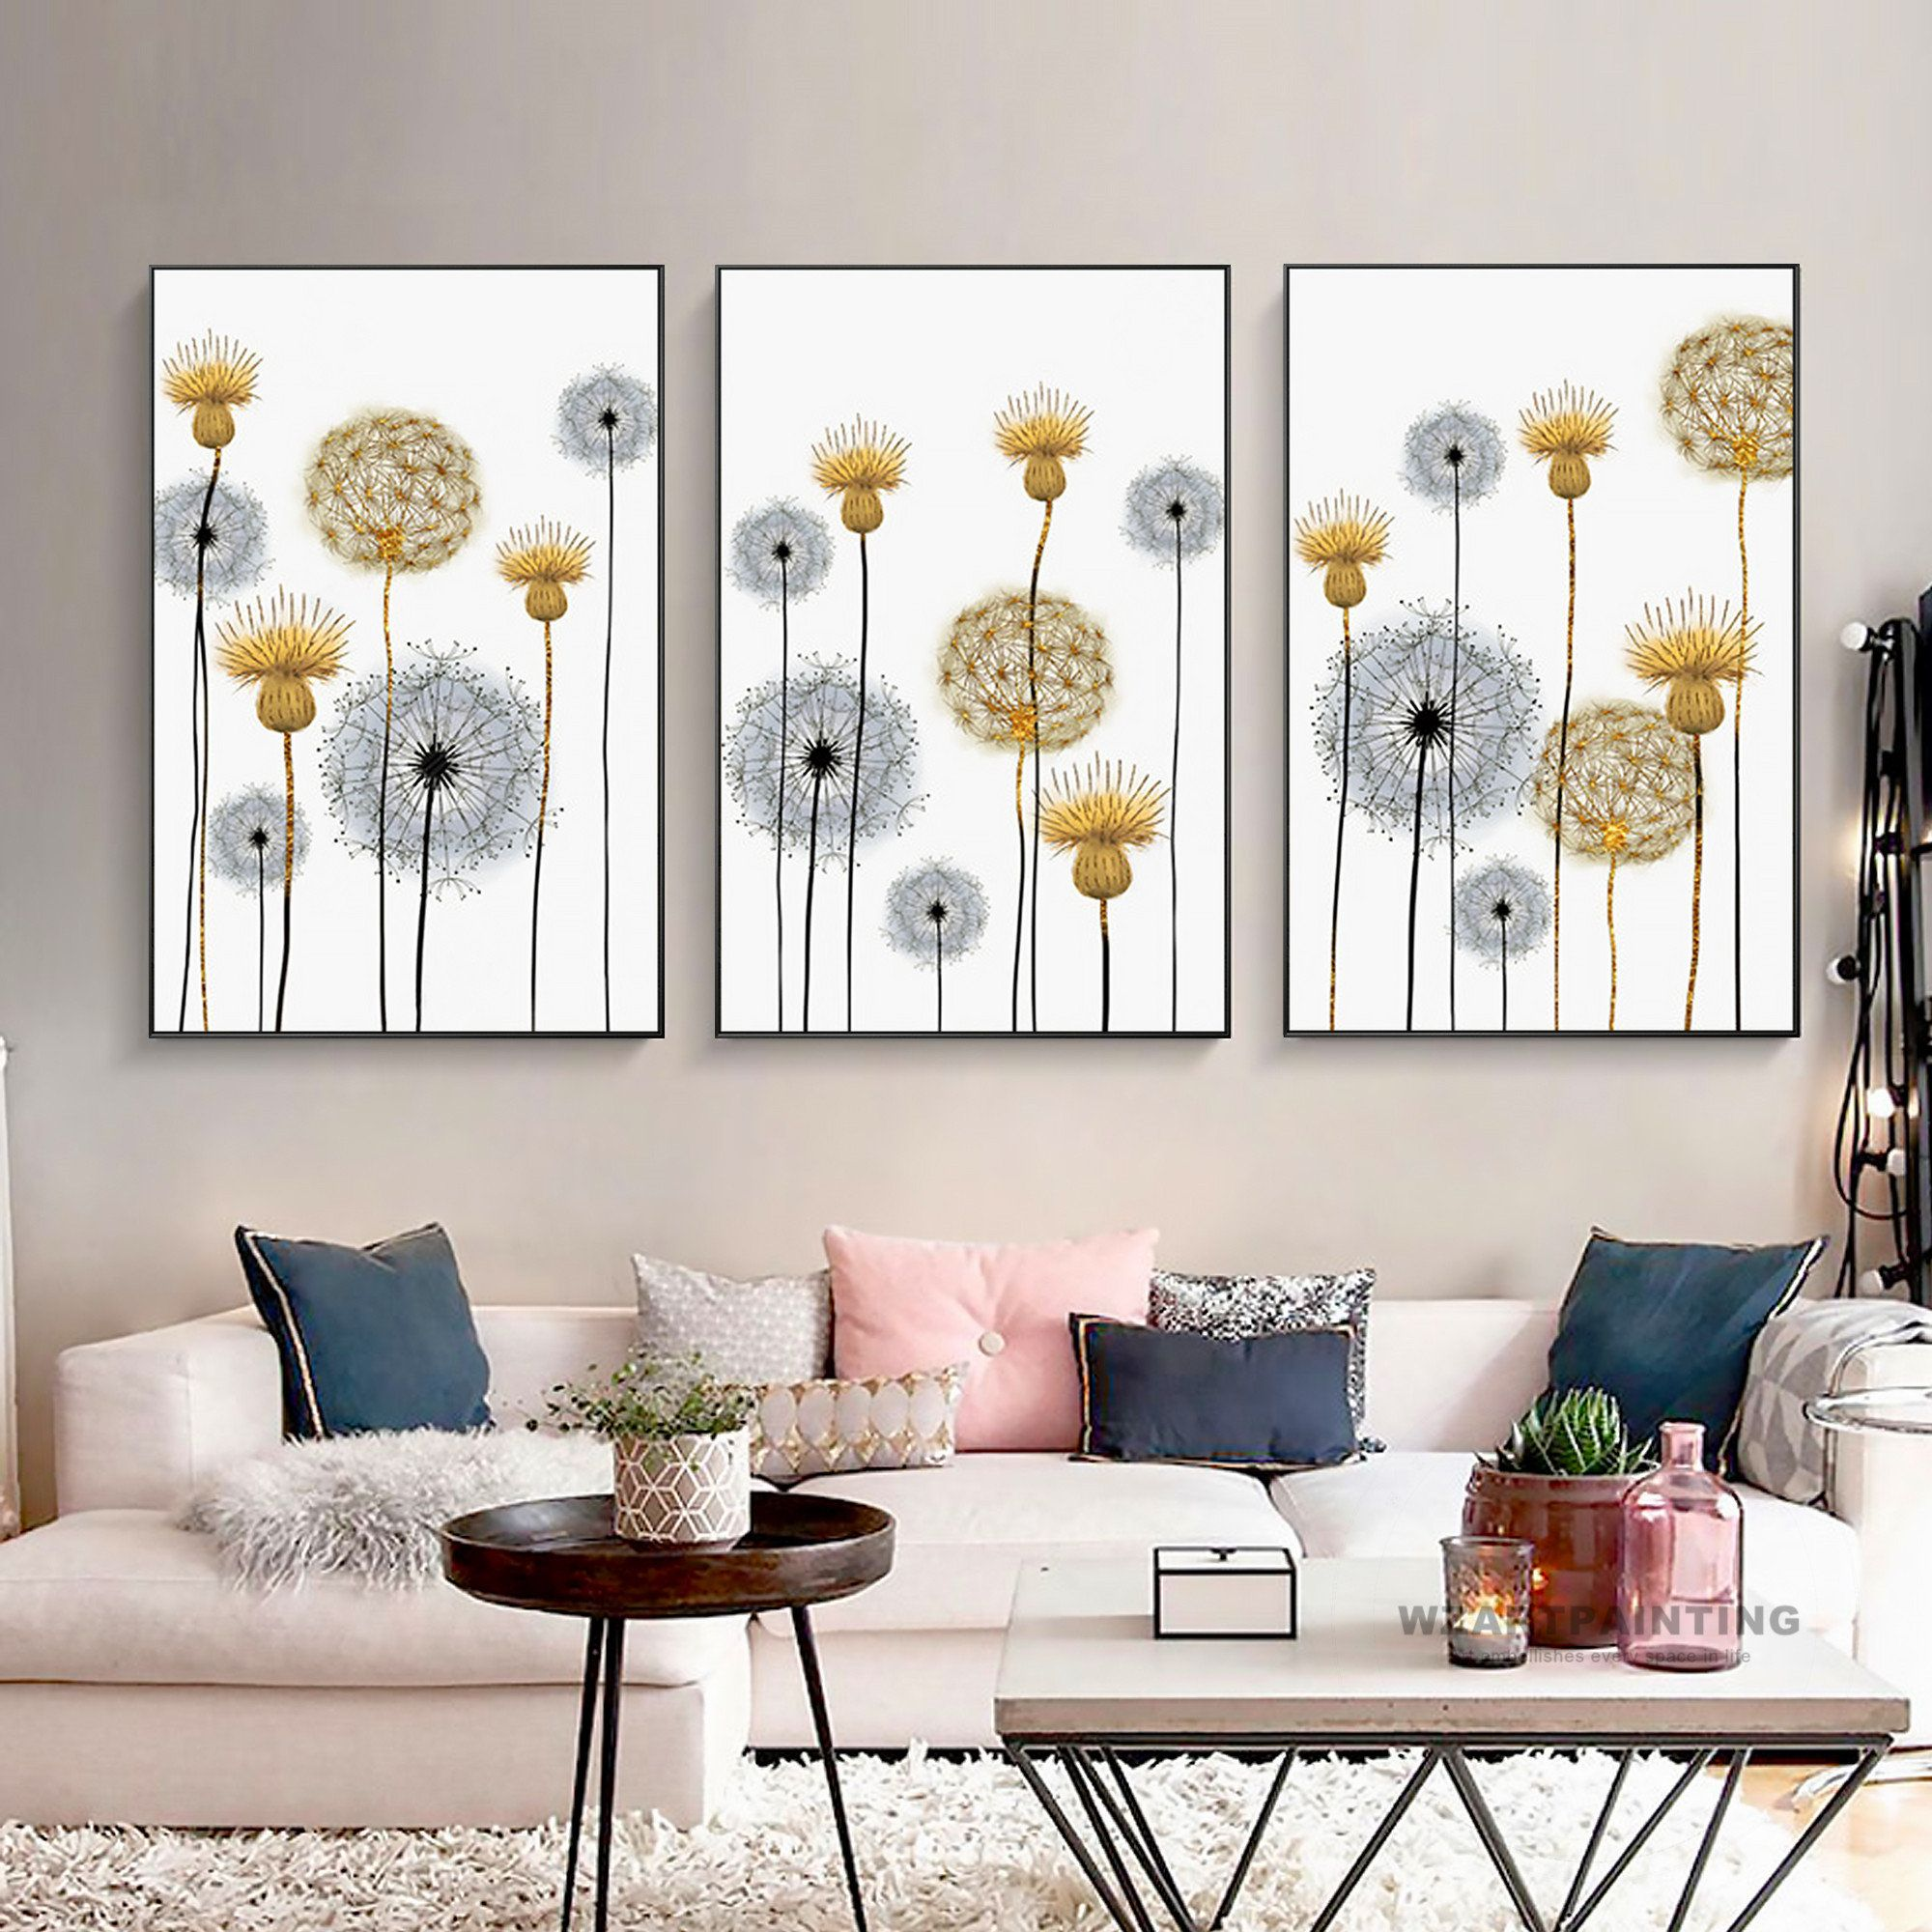 Frame Wall Art Set Of 3 Nordic Style Dandelion Plant Canvas Etsy Framed Wall Art Sets Frames On Wall Wall Art Sets